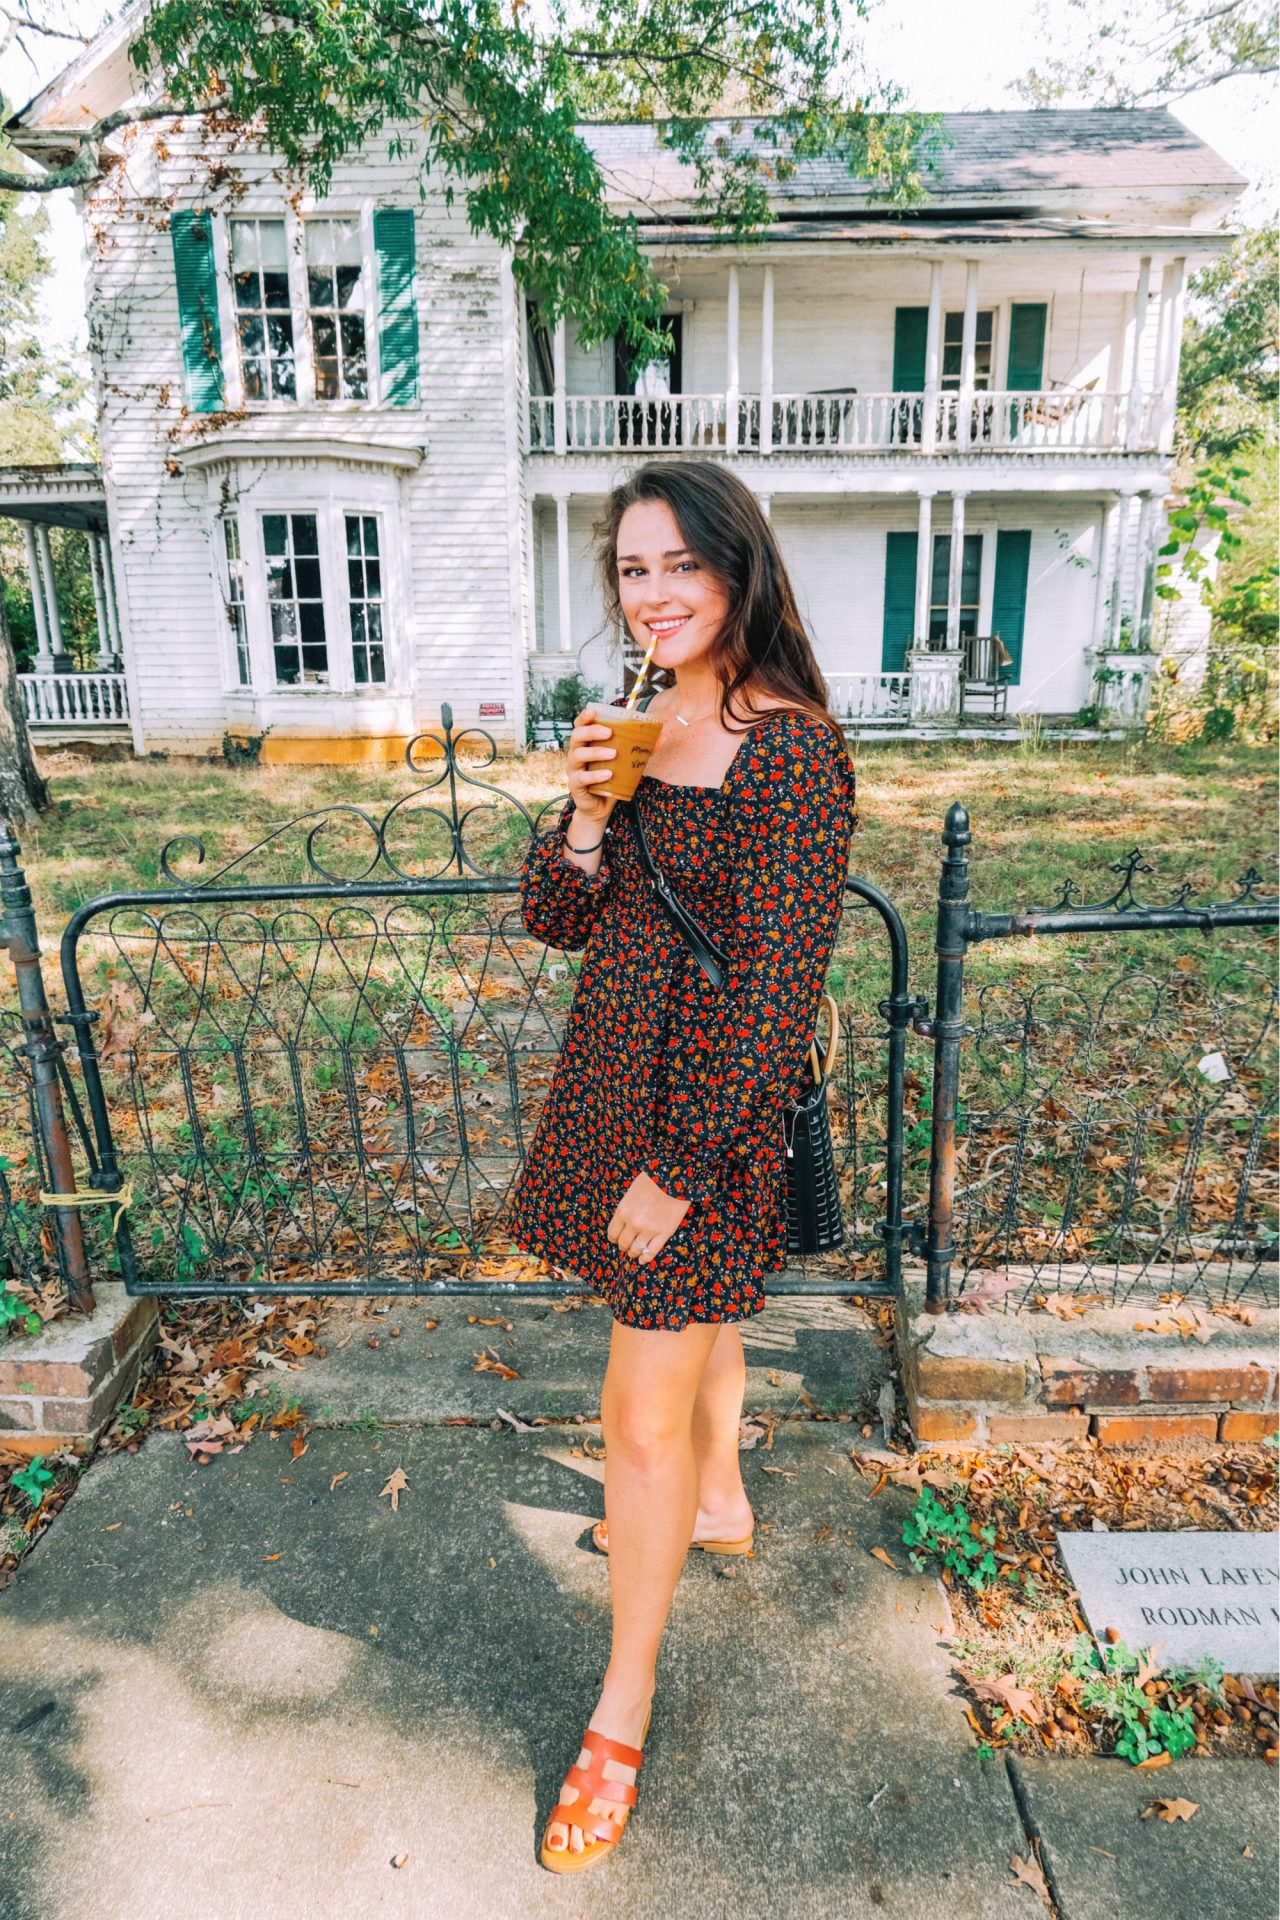 Waxhaw date, rose dress, fall in the south, coffee, provision, Waxhaw date, fun day, life, October, haunted house, halloween fall fashion